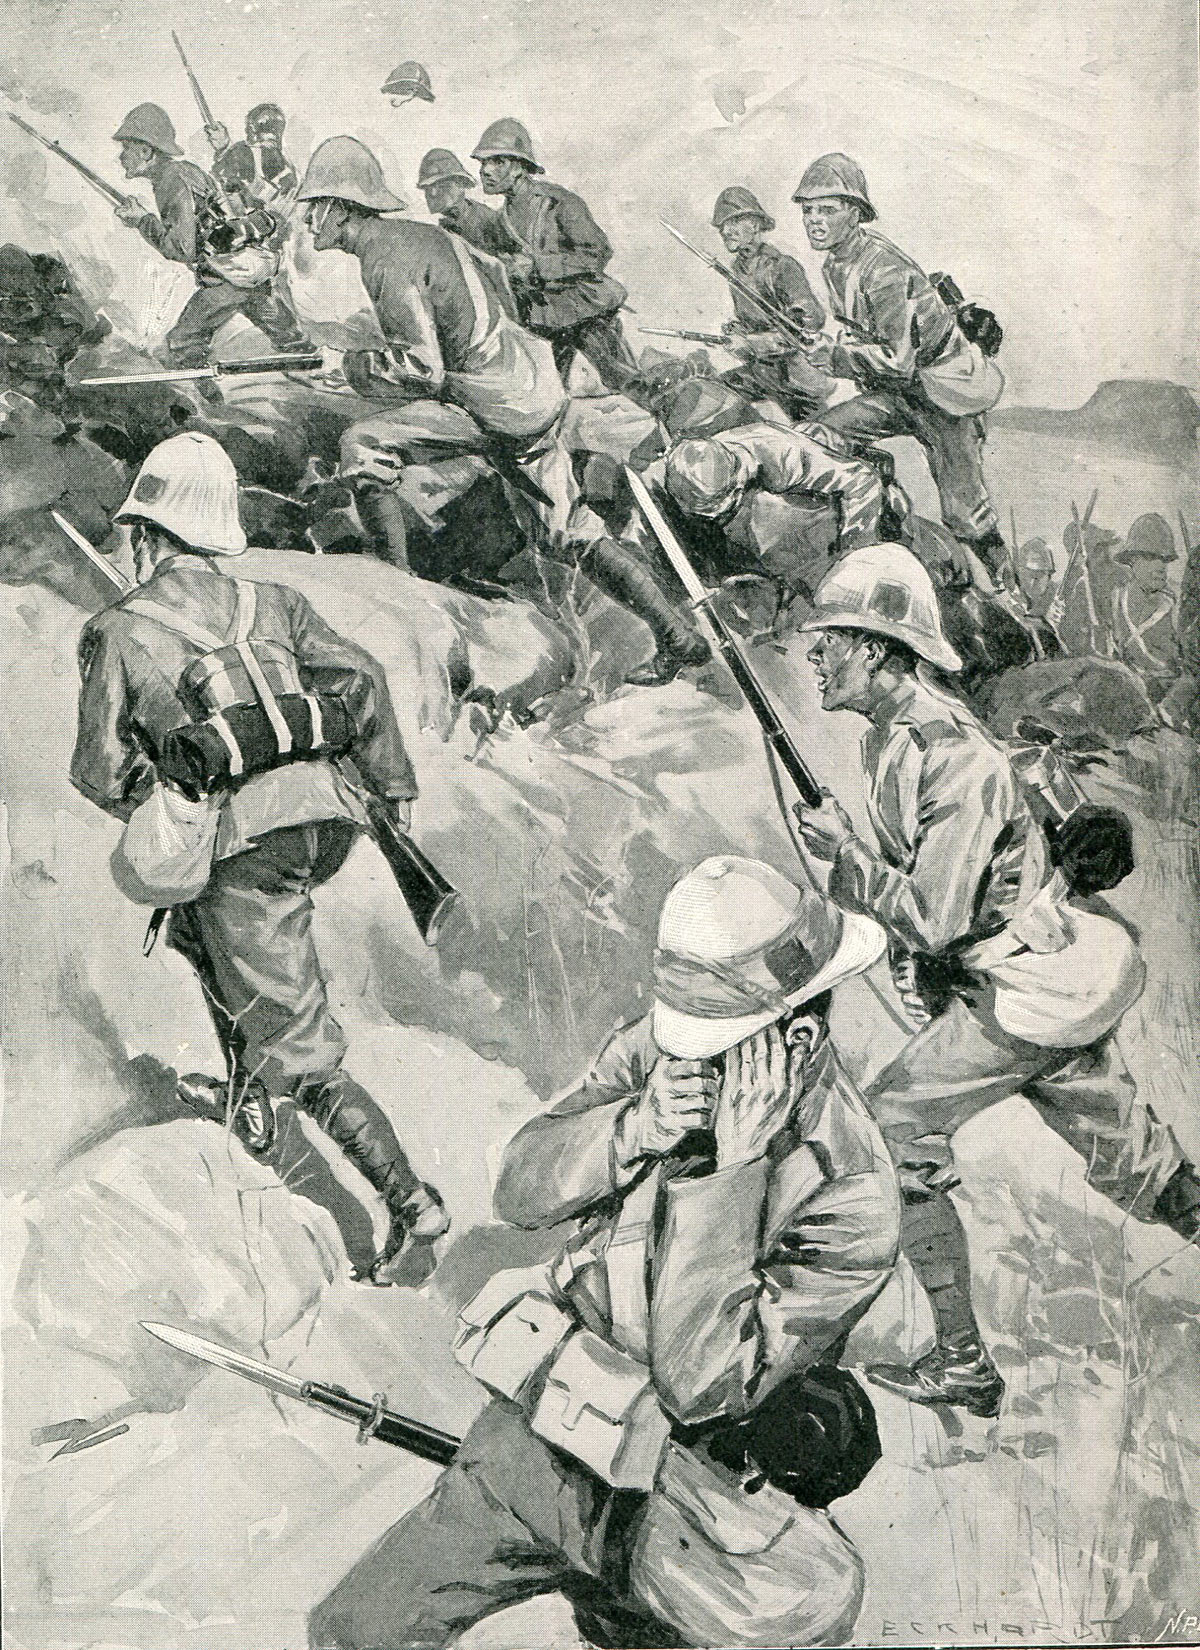 Durham Light Infantry storming Val Krantz: Battles of Val Krantz and Pieters 5th to 28th February 1900 in the Great Boer War: picture by Oscar Eckhardt